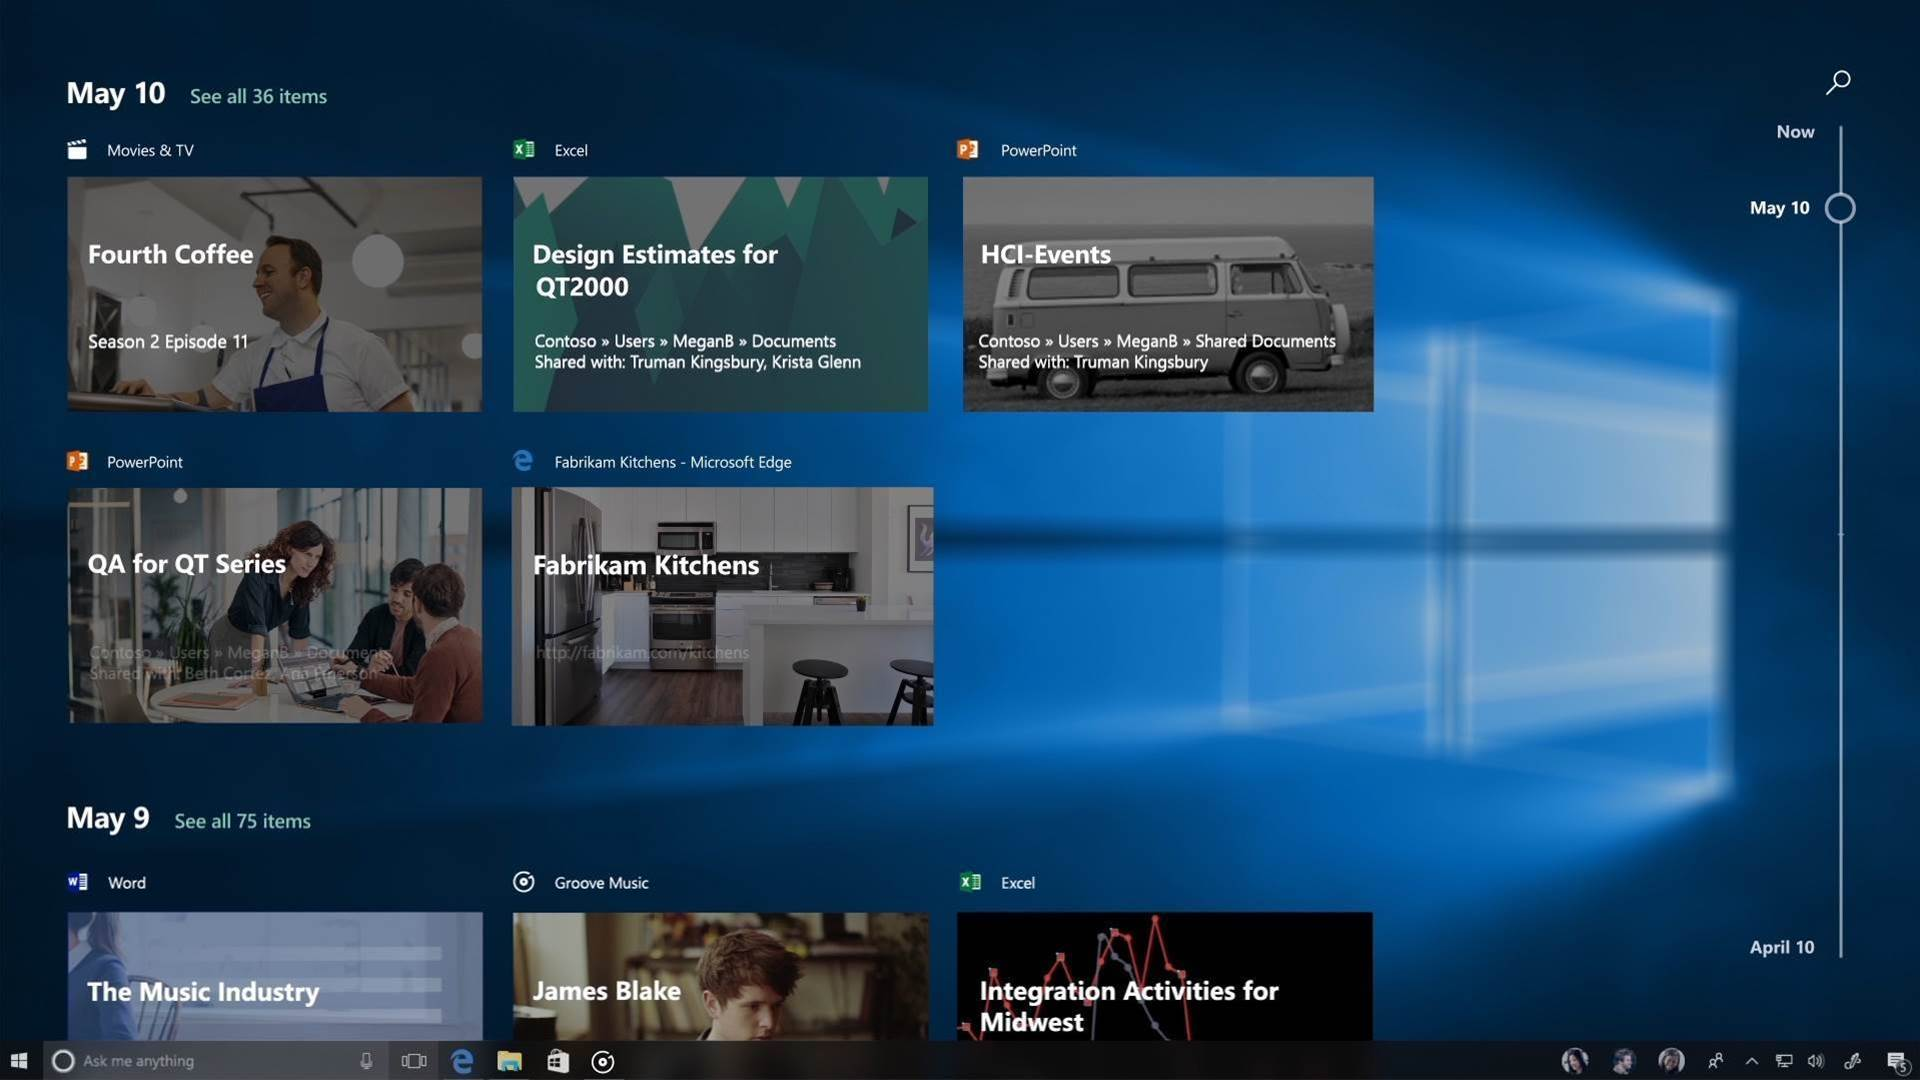 Next Windows 10 update to offer rich new features